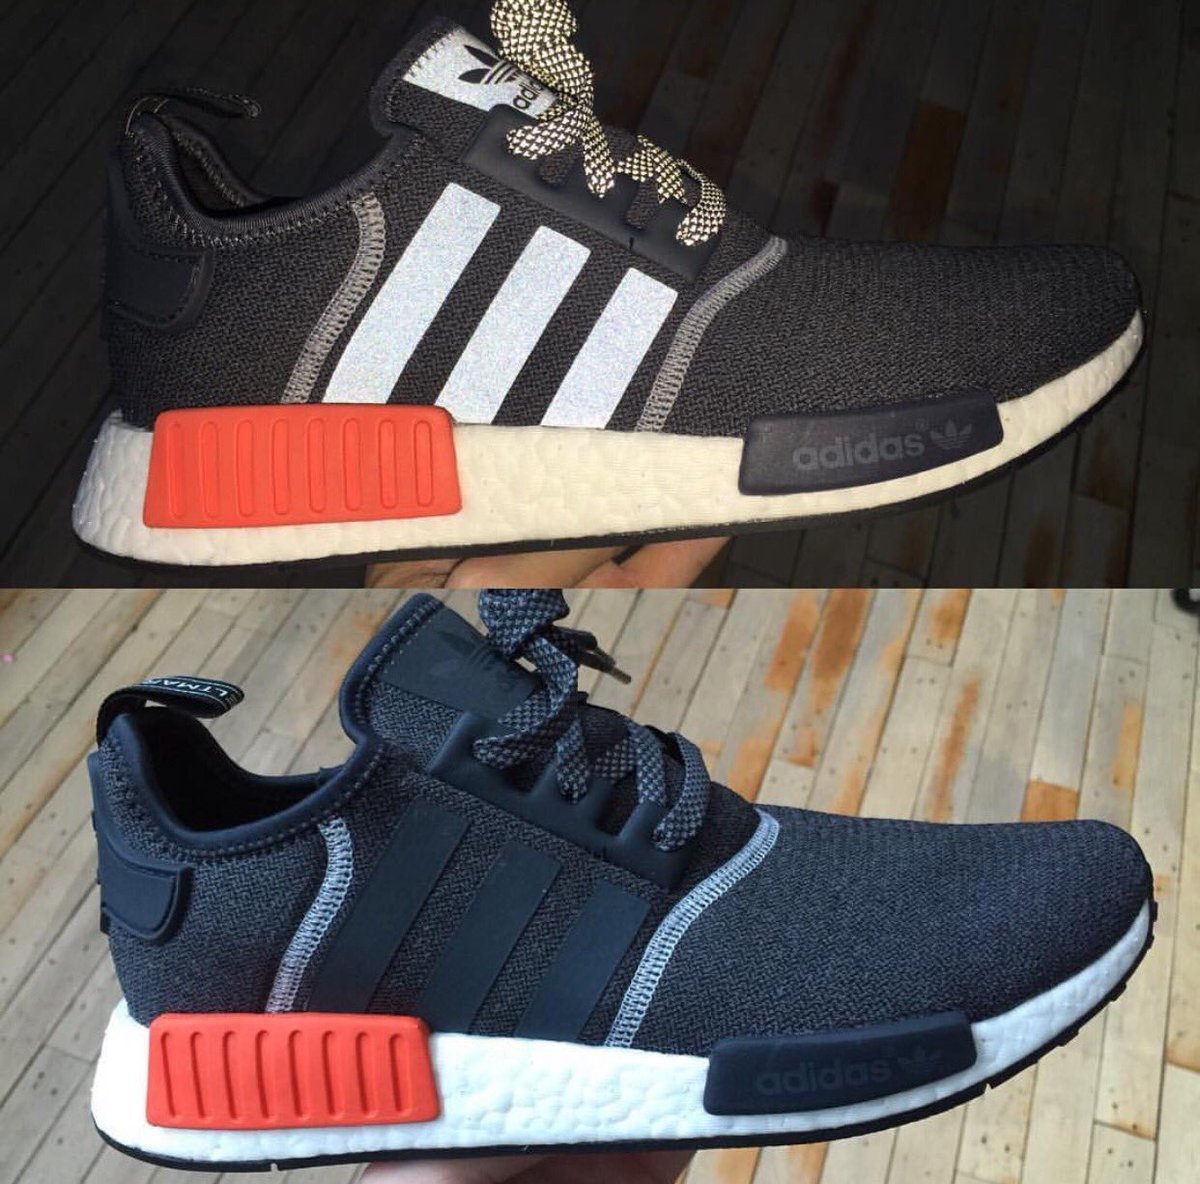 BY1909 ADIDAS NMD XR1 OG CORE BLACK 7 7.5 8 8.5 9 9.5 10